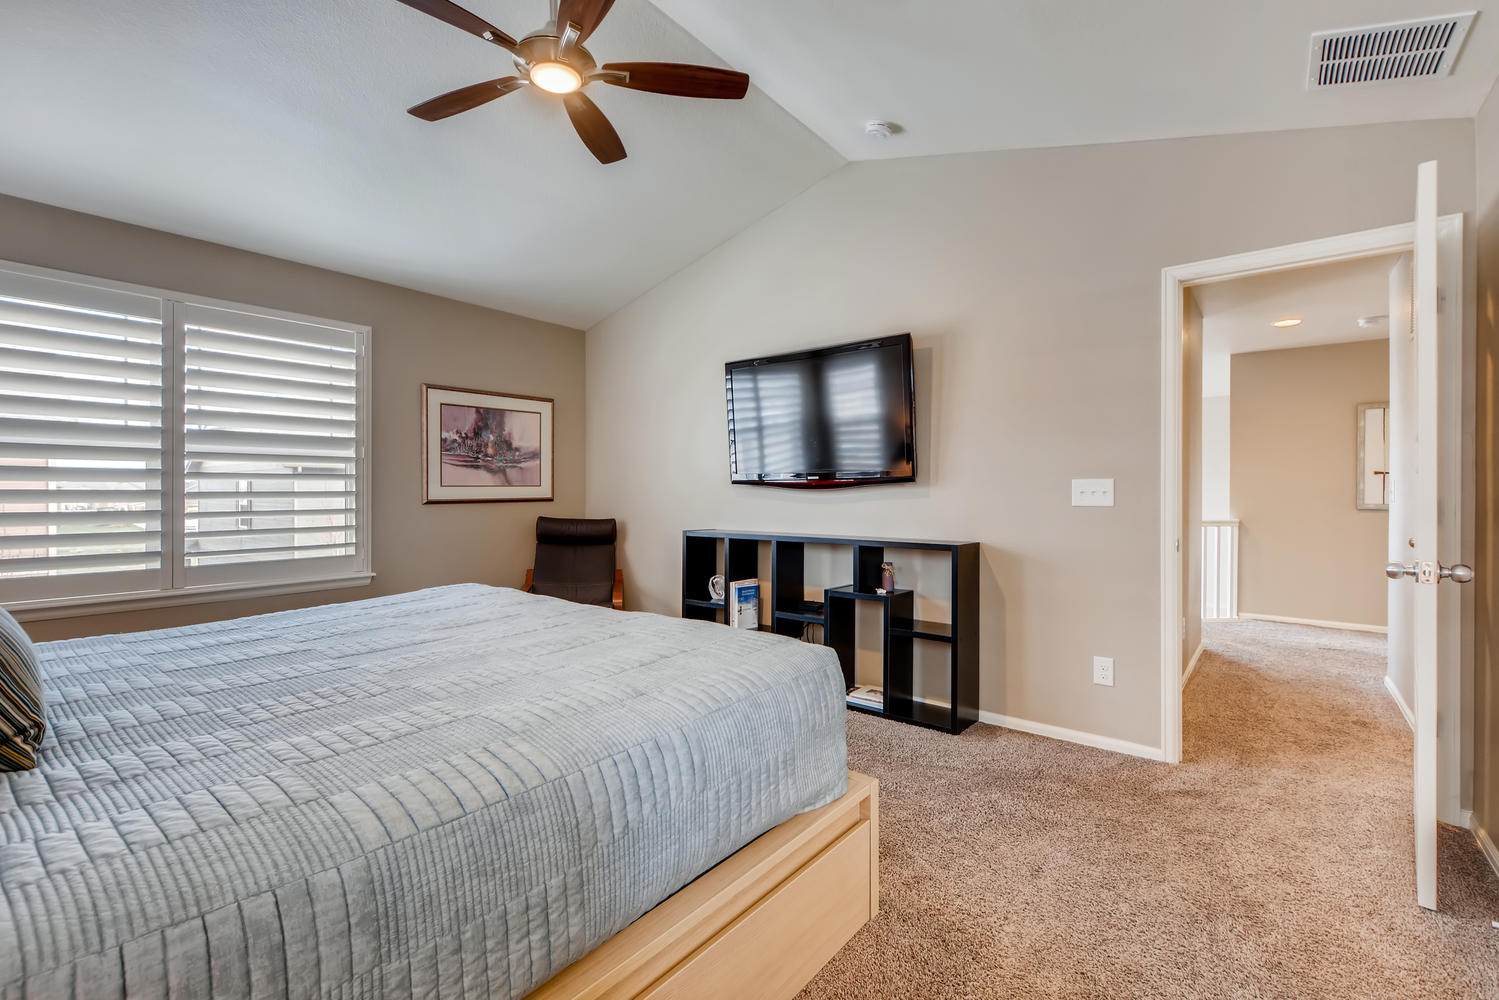 REAL ESTATE LISTING: 2182 Steppe Dr Longmont Master Suite